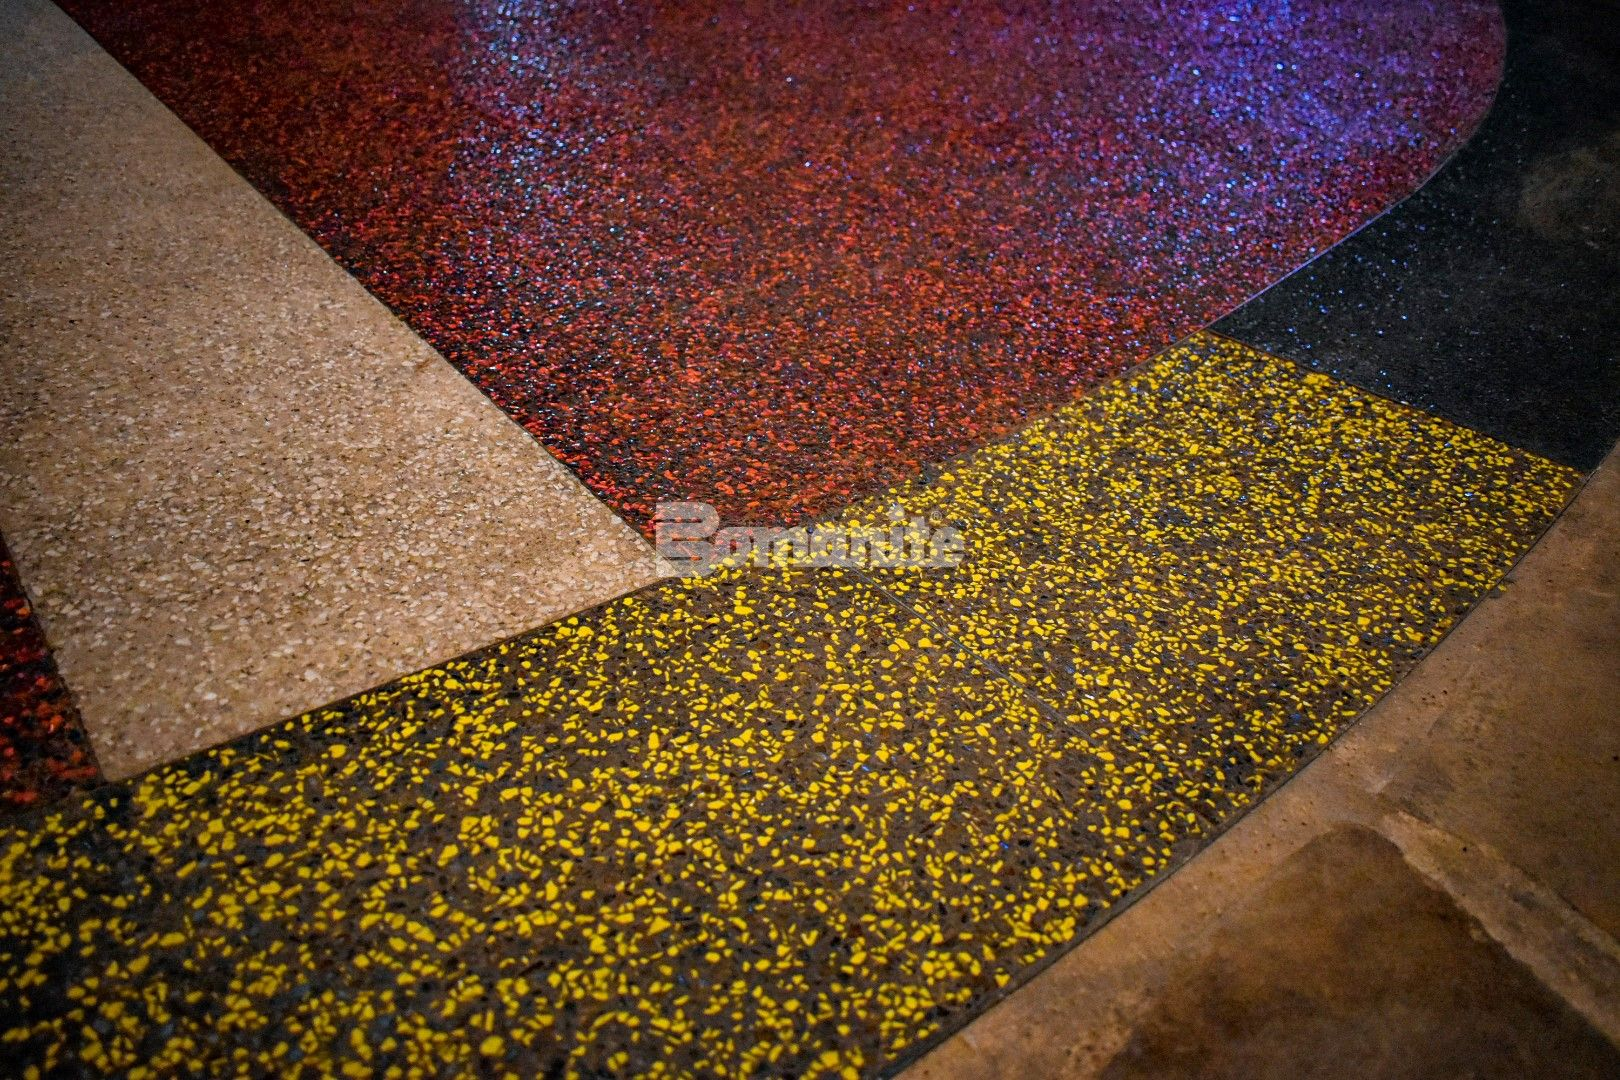 Bomanite Exposed Aggregate Revealed System in White, Red, Yellow and Black showcases the significant diamond symbol to the chata people at the interior entrance of the Choctaw Cultural Center